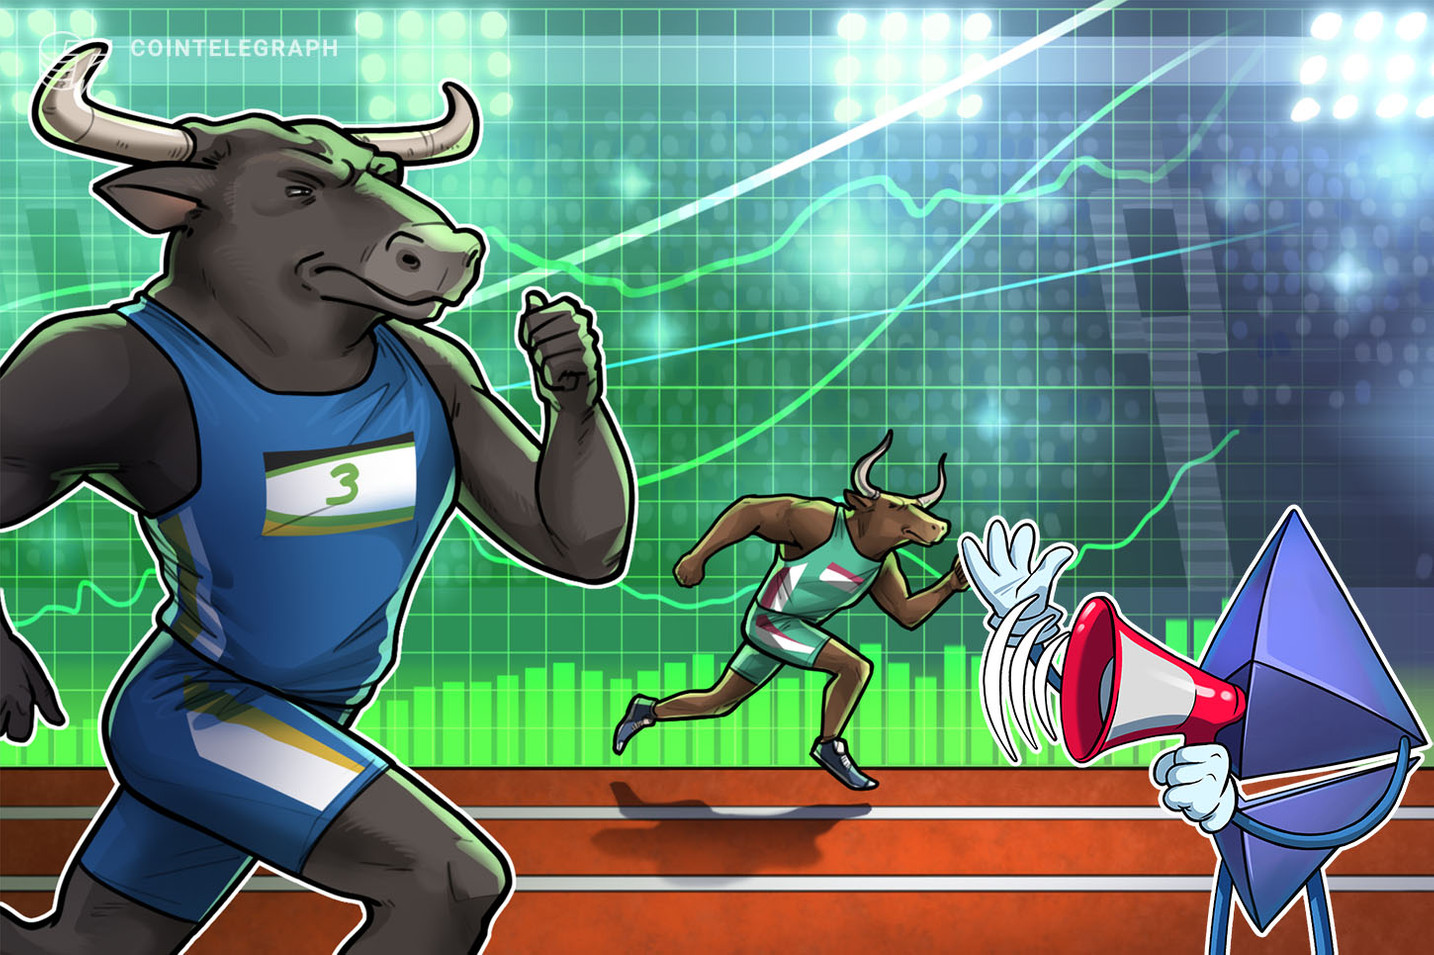 3 key on-chain metrics suggest Ethereum price is in a 2017-style bull run